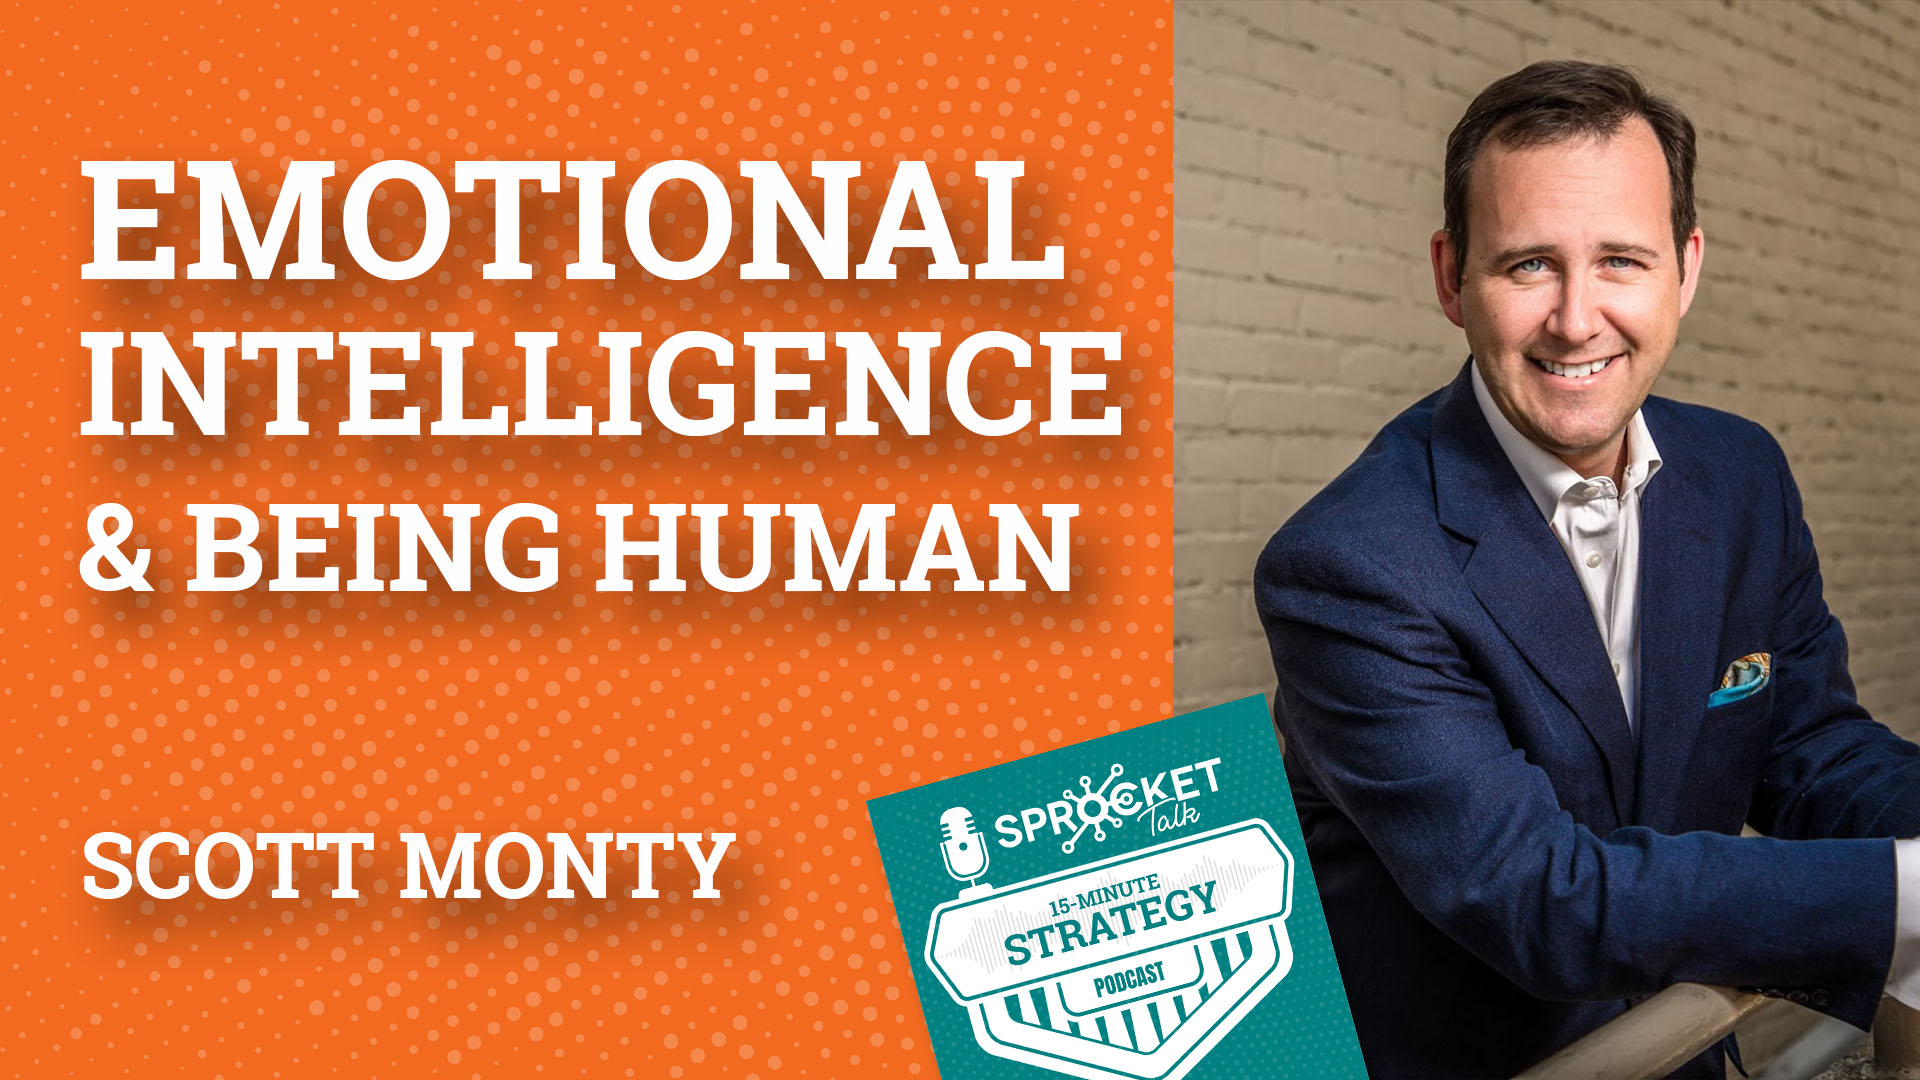 Scott Monty on Emotional Intelligence & Being Human | 15-Minute Strategy Podcast